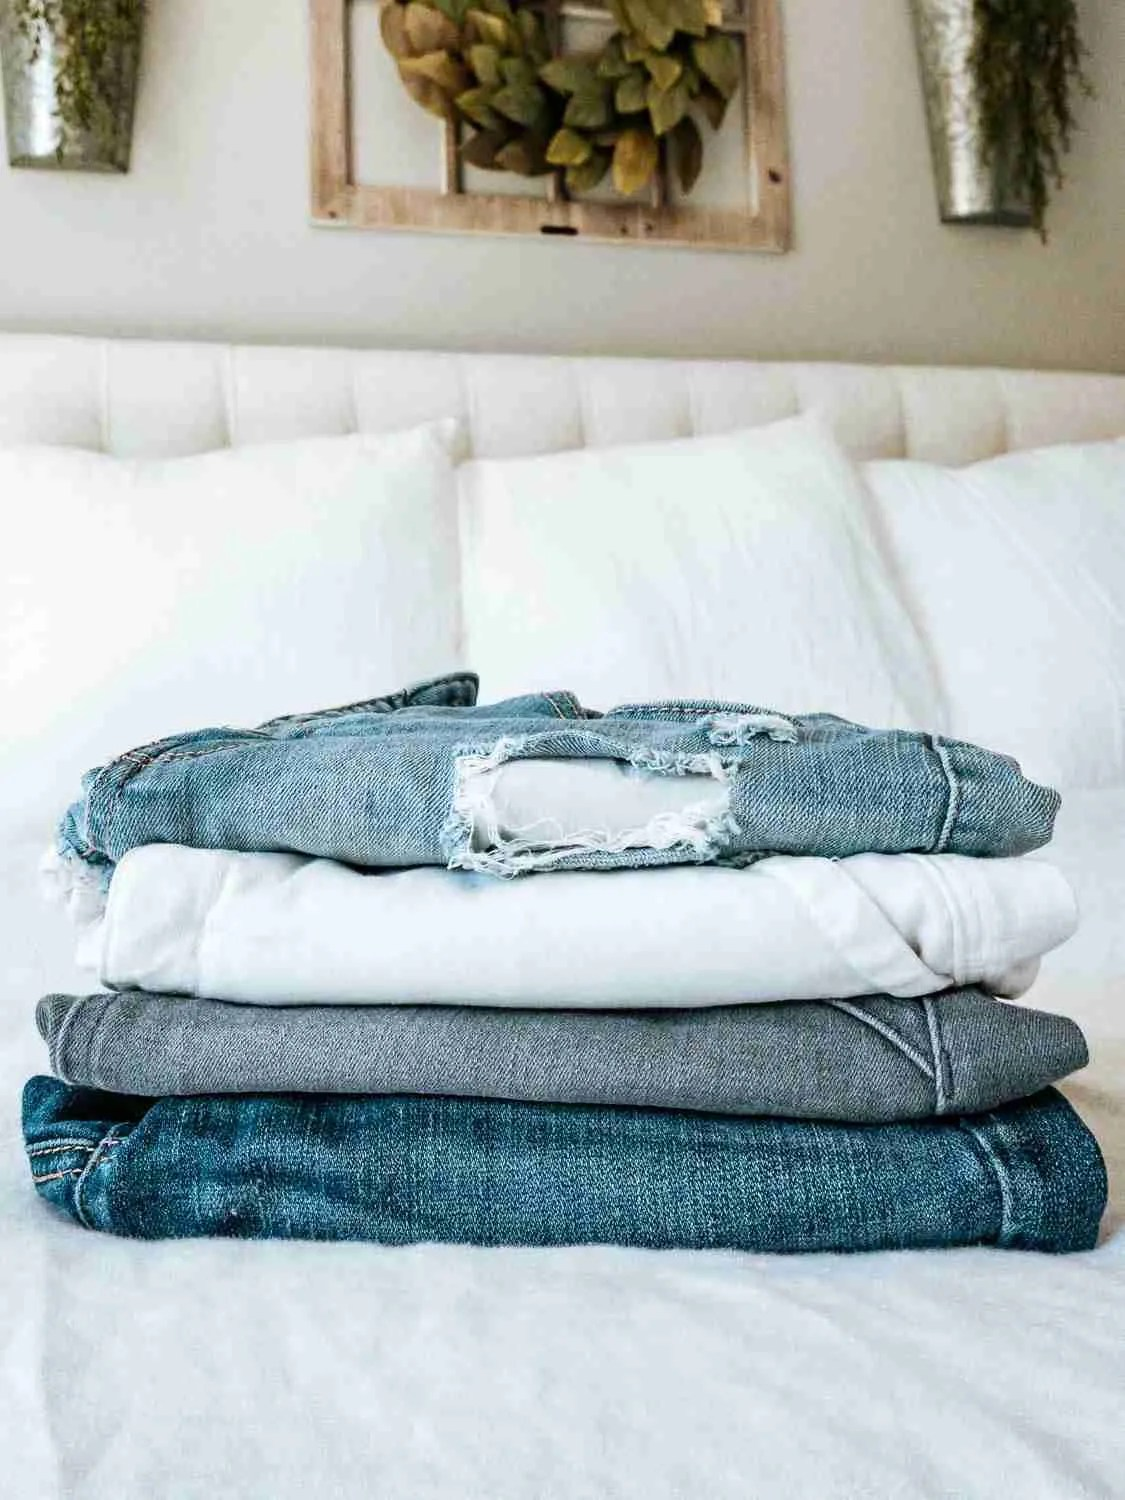 Jeans stacked on bed from a capsule wardrobe for minimalist travel